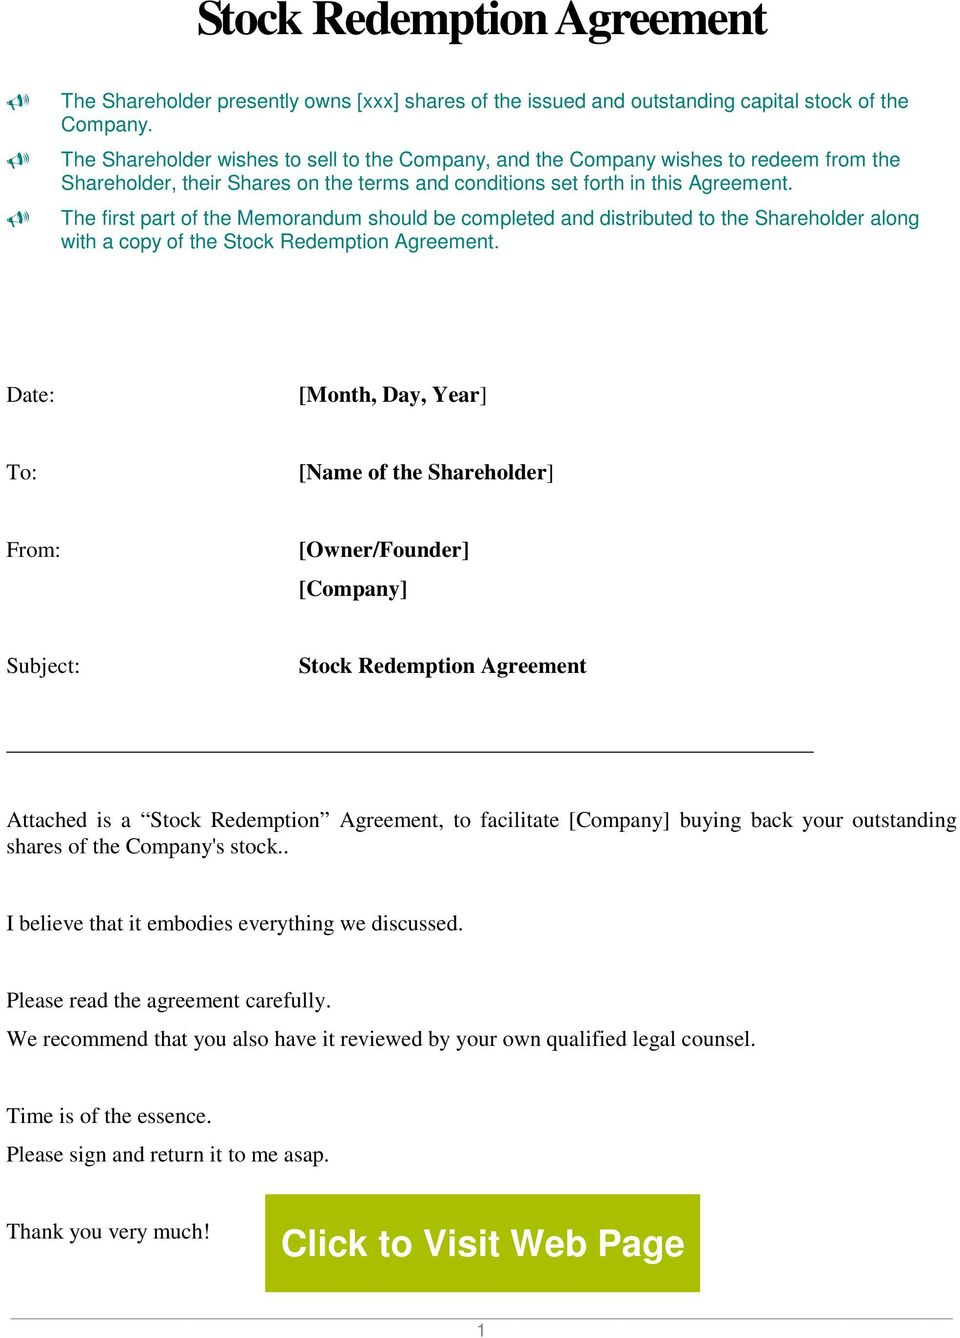 Stock Redemption Agreement Pdf